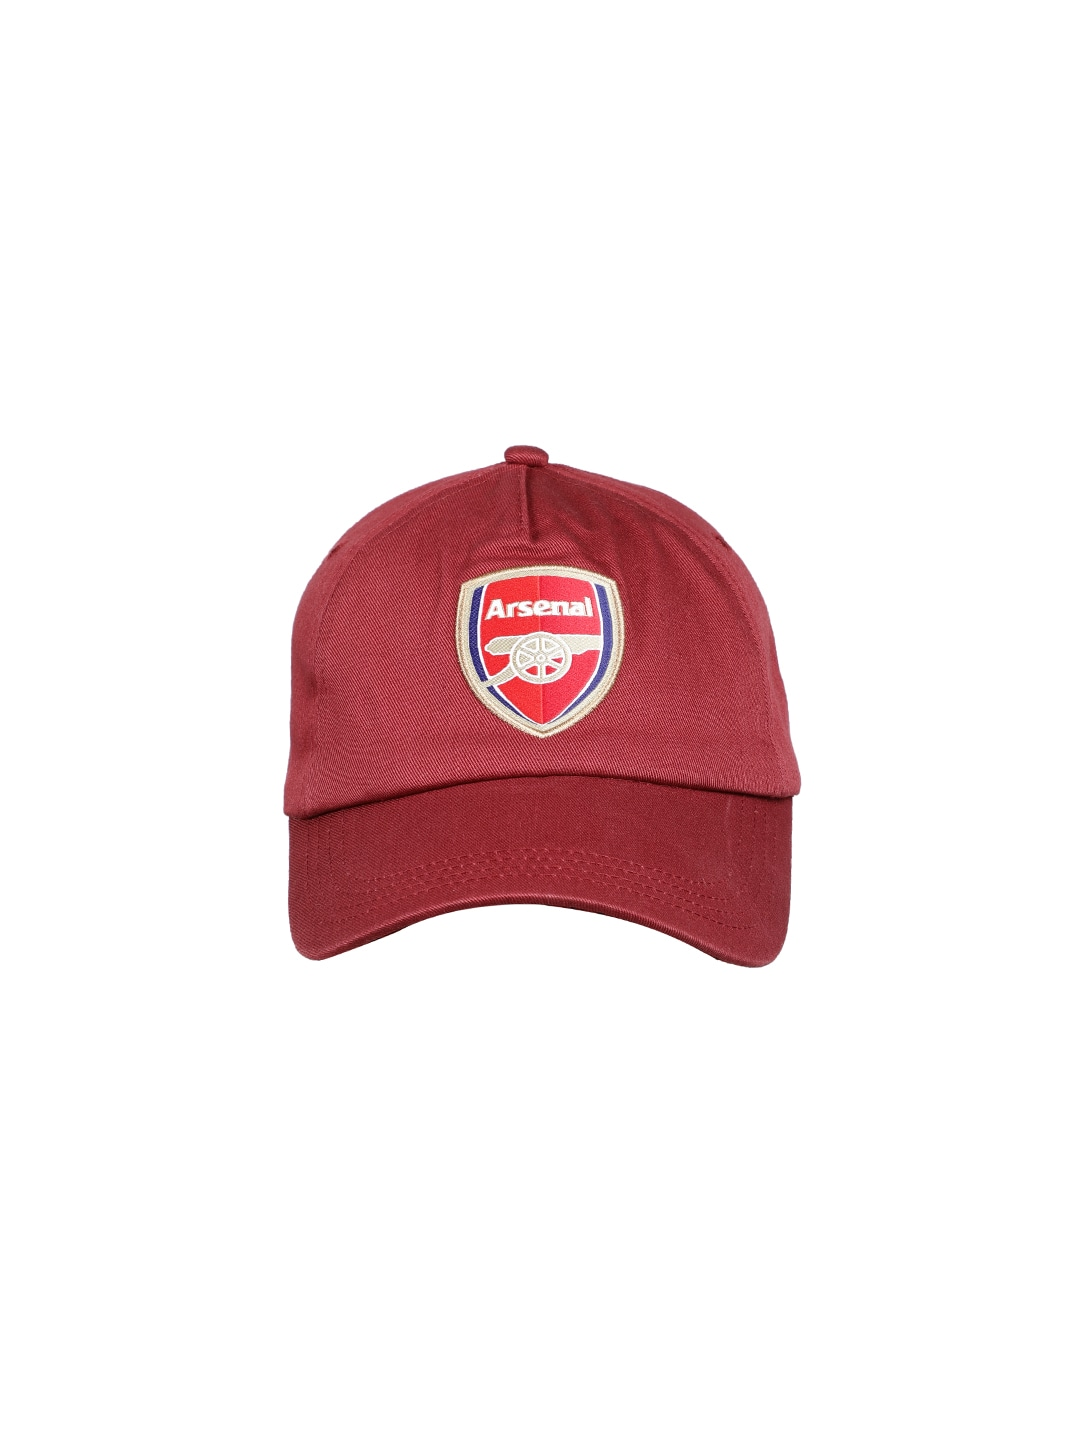 a1b06e2932f4b2 Men Mens Caps - Buy Men Mens Caps online in India